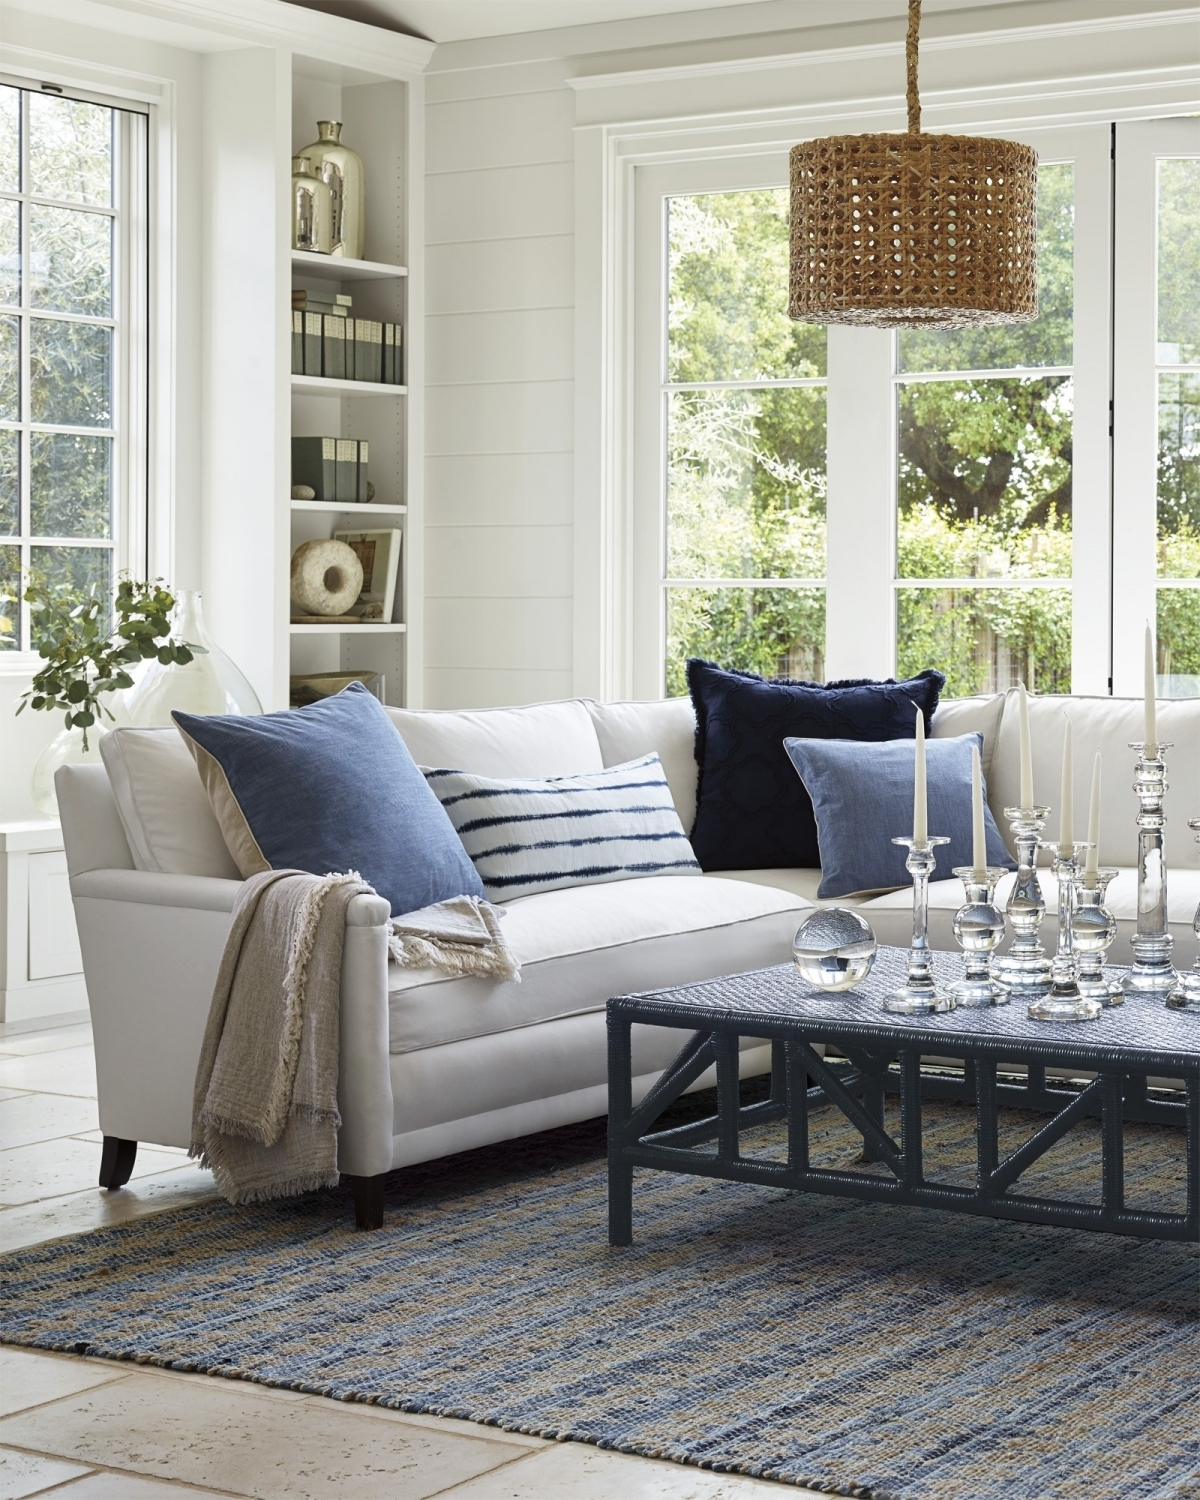 2017 Queens Ny Sectional Sofas Pertaining To 20 Fabulous Coffee Tables + How To Pair With The Right Sofa (View 14 of 15)